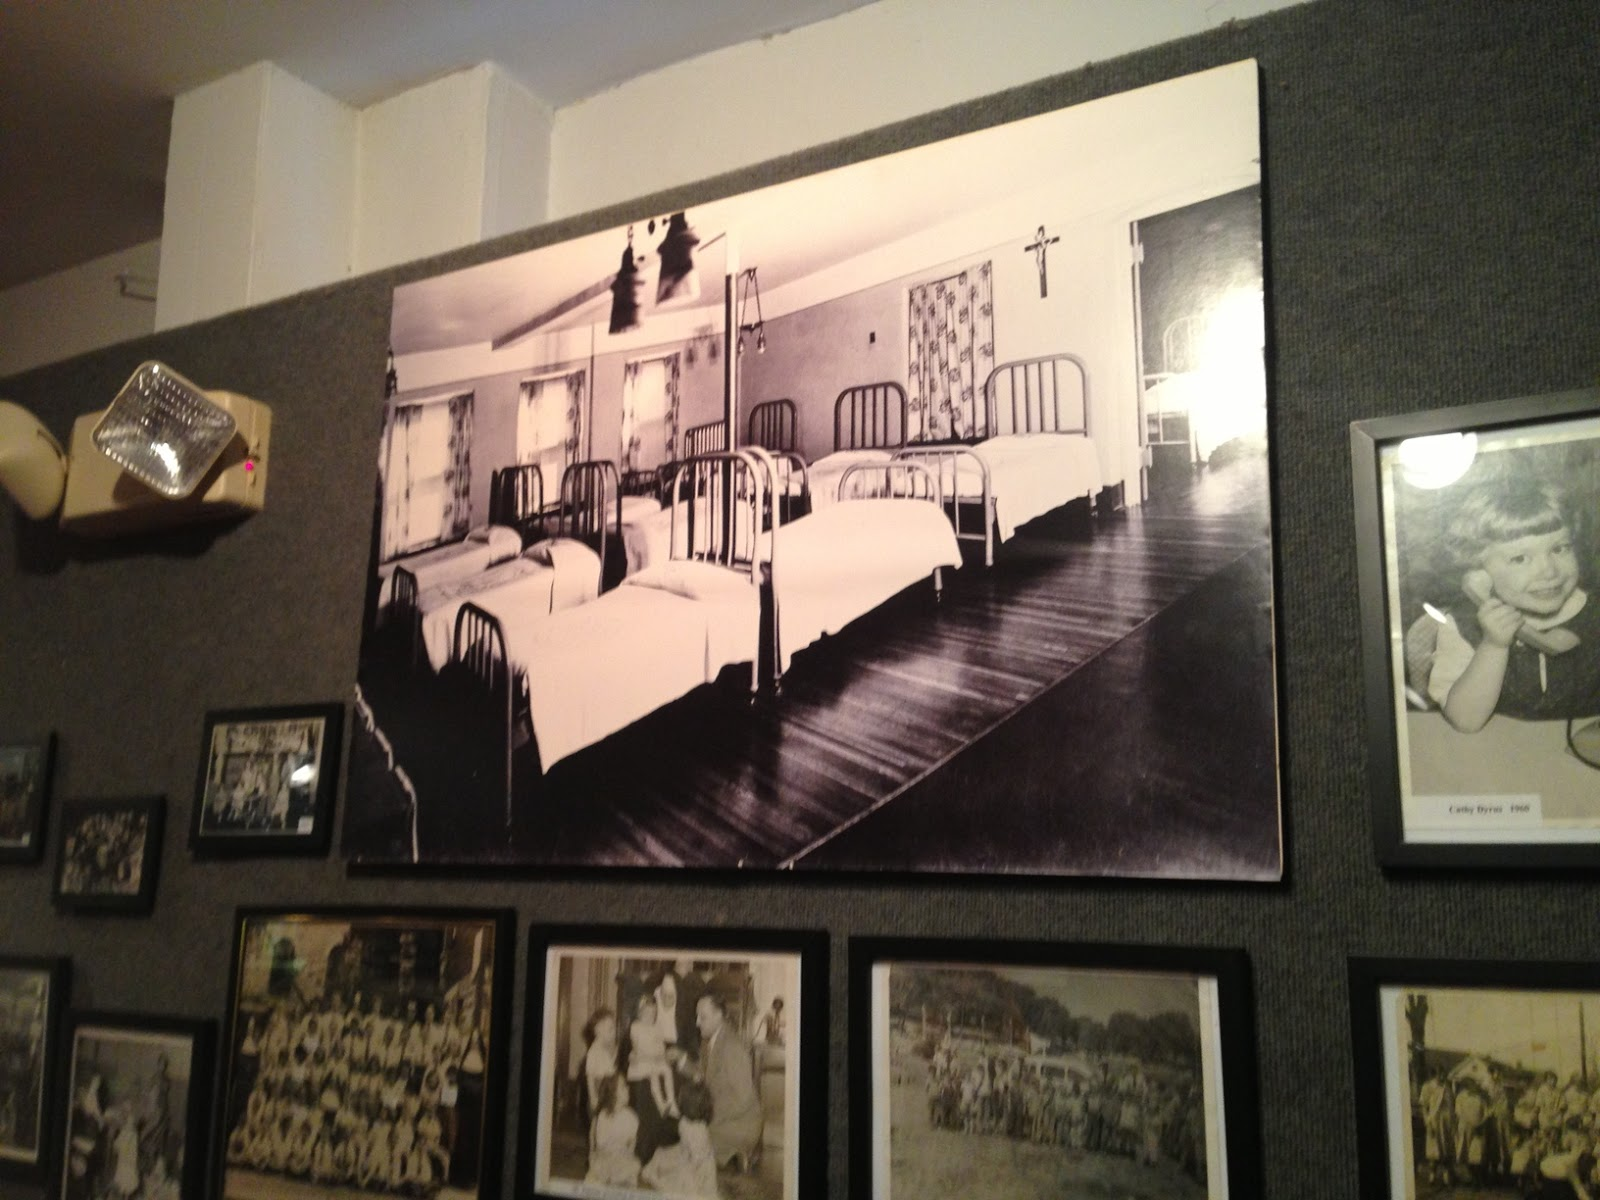 Exhibits tell the story of the orphanage, run in the home from 1919-1988